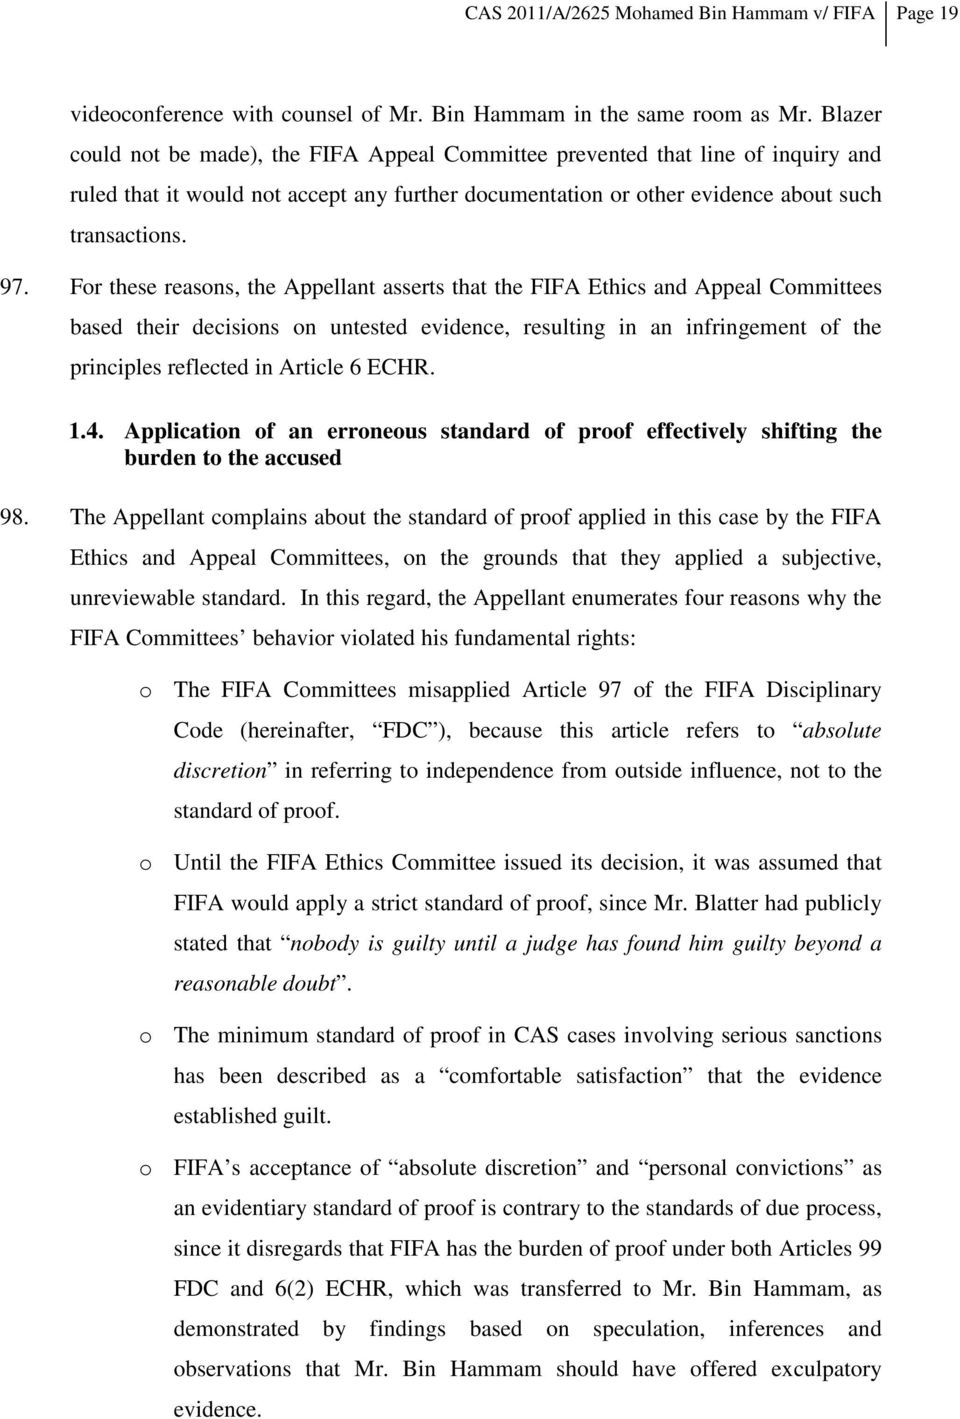 For these reasons, the Appellant asserts that the FIFA Ethics and Appeal Committees based their decisions on untested evidence, resulting in an infringement of the principles reflected in Article 6